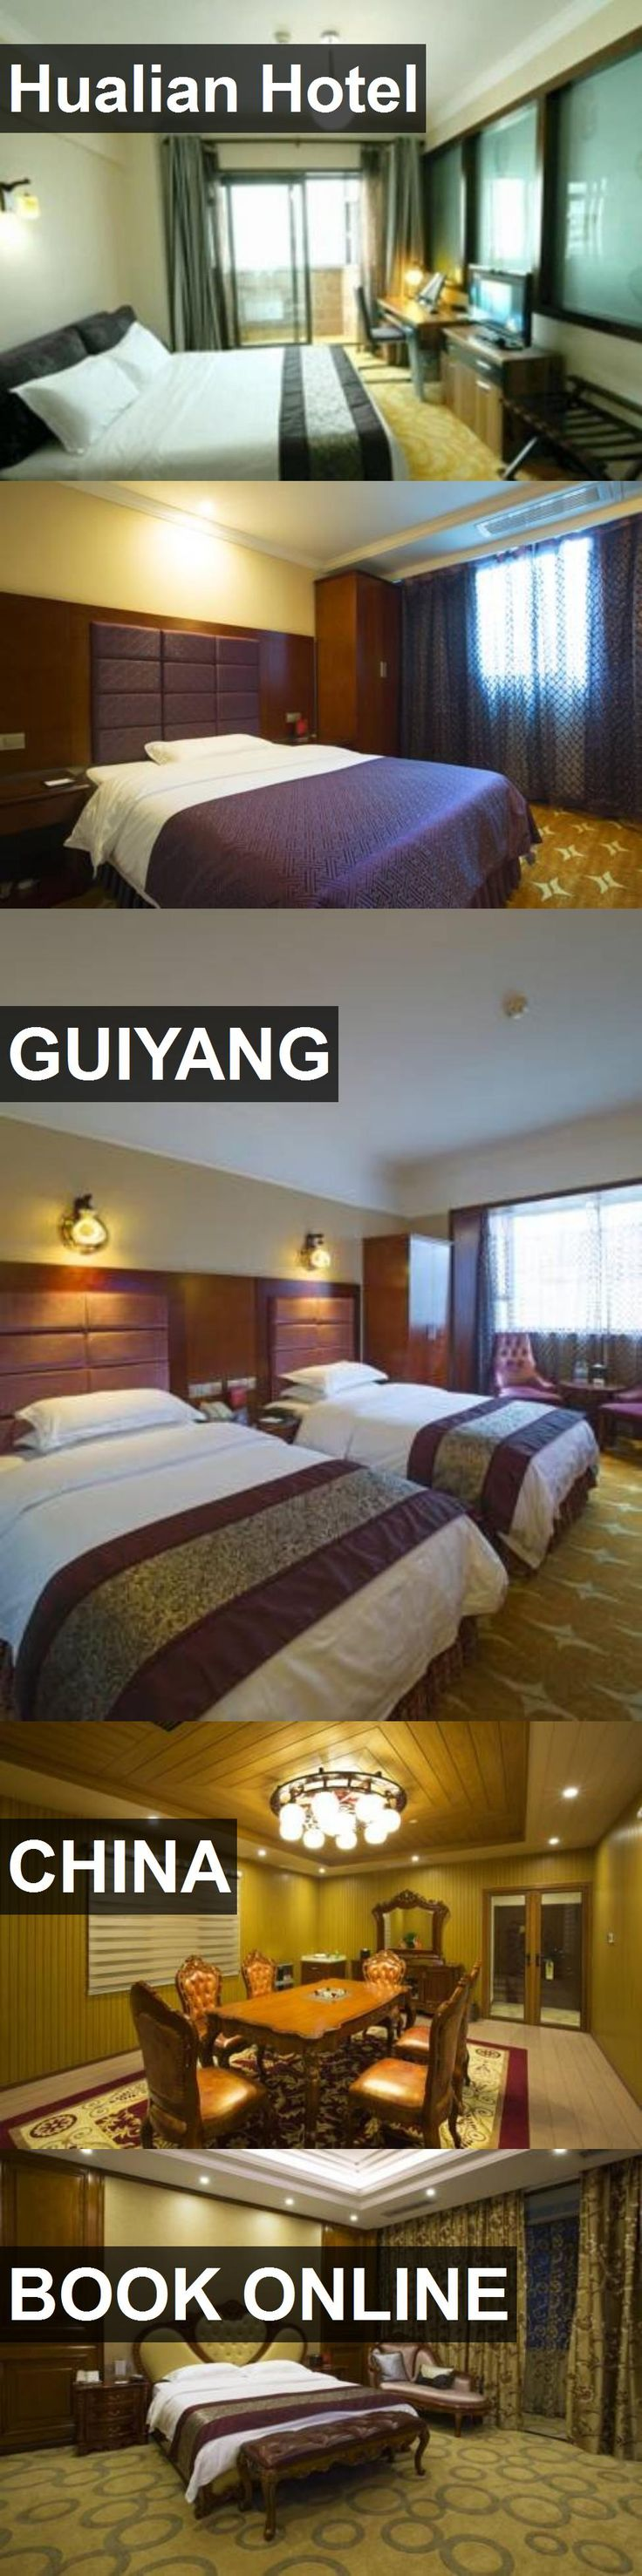 Hualian Hotel in Guiyang, China. For more information, photos, reviews and best prices please follow the link. #China #Guiyang #travel #vacation #hotel